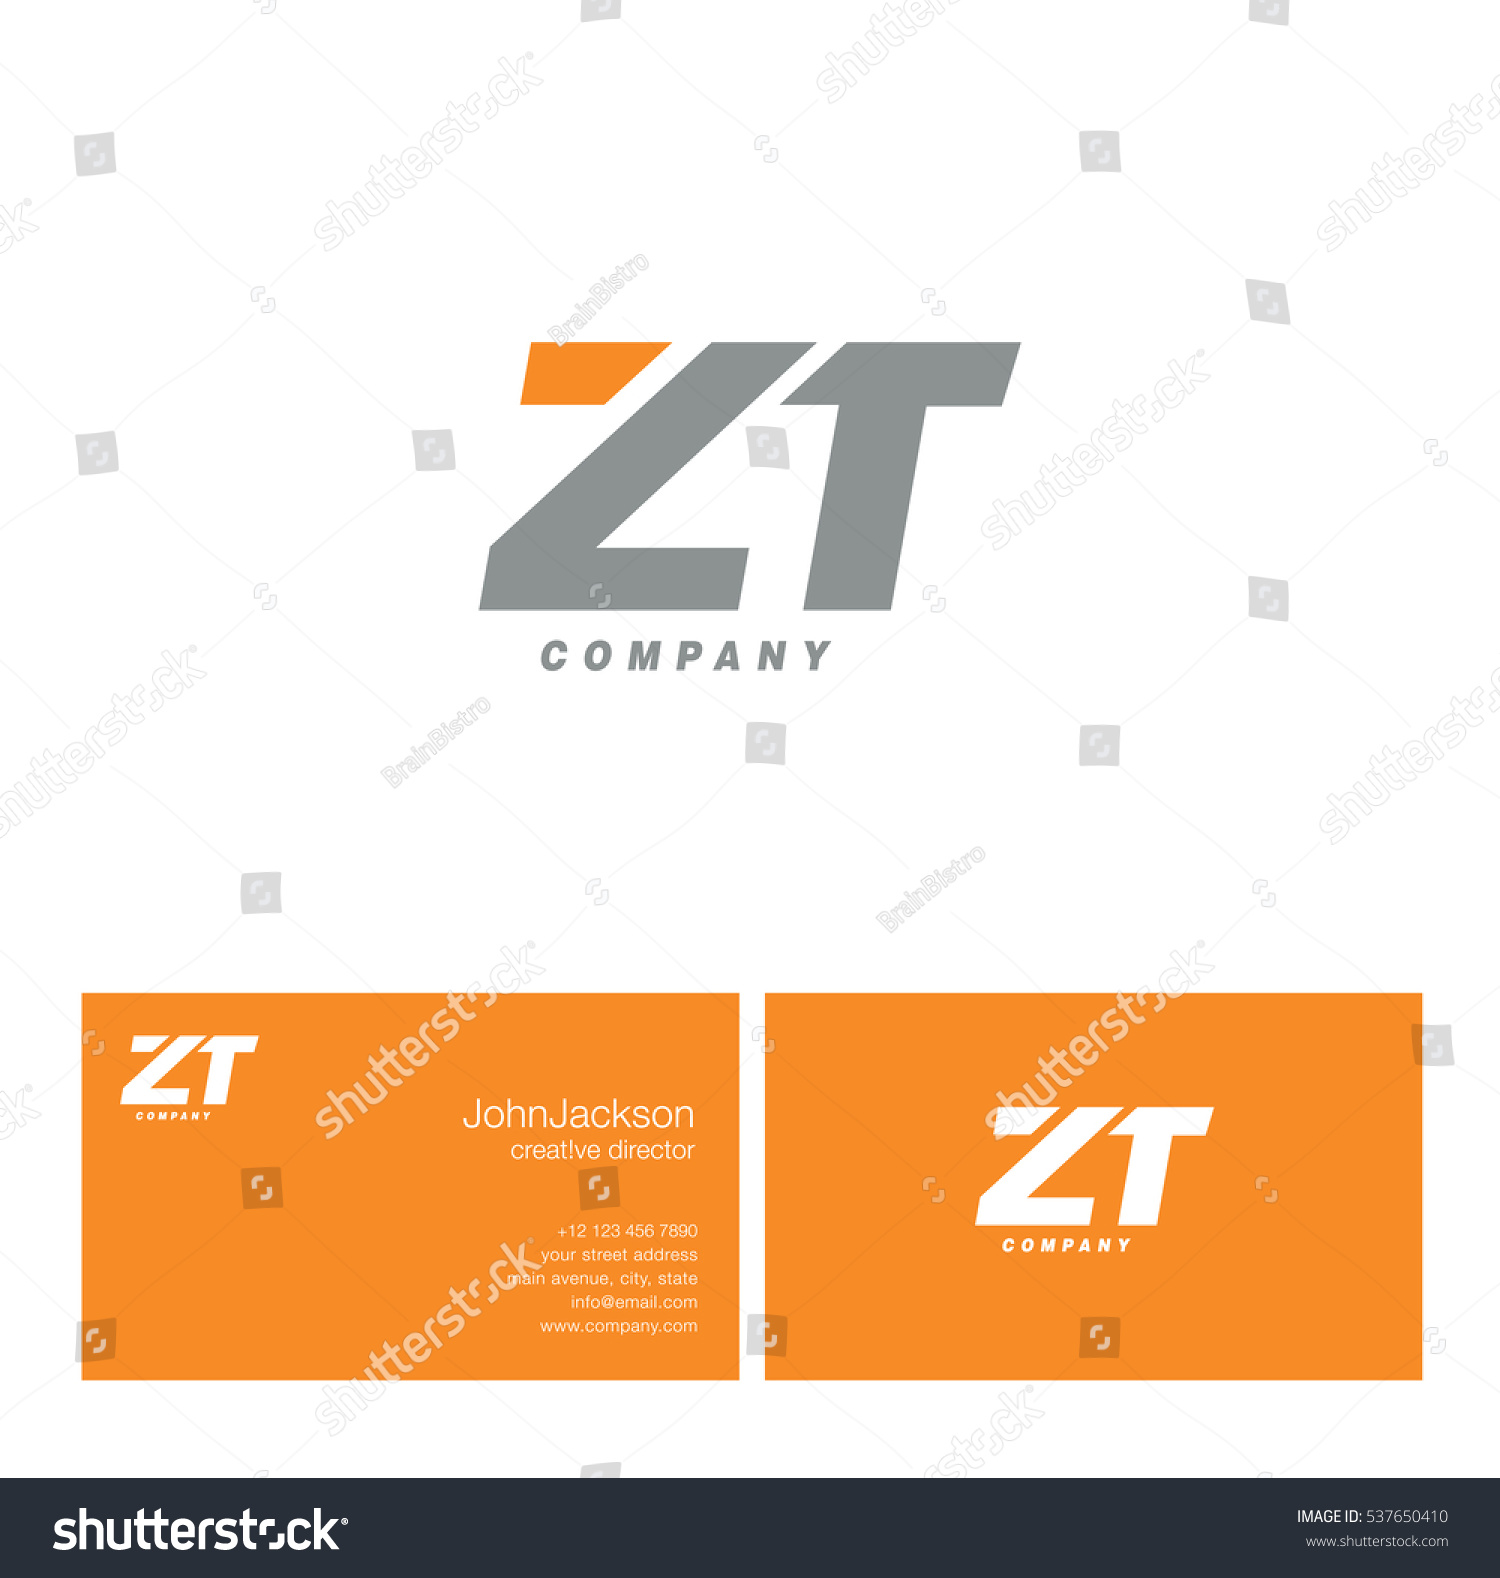 Great 1 Inch Hexagon Template Huge 1 Page Resumes Examples Solid 1.25 Button Template 10 Best Resumes Old 10 Tips To Making A Resume Yellow100 Dollar Bill Template Z T Letters Logo Business Card Stock Vector 537650410   Shutterstock